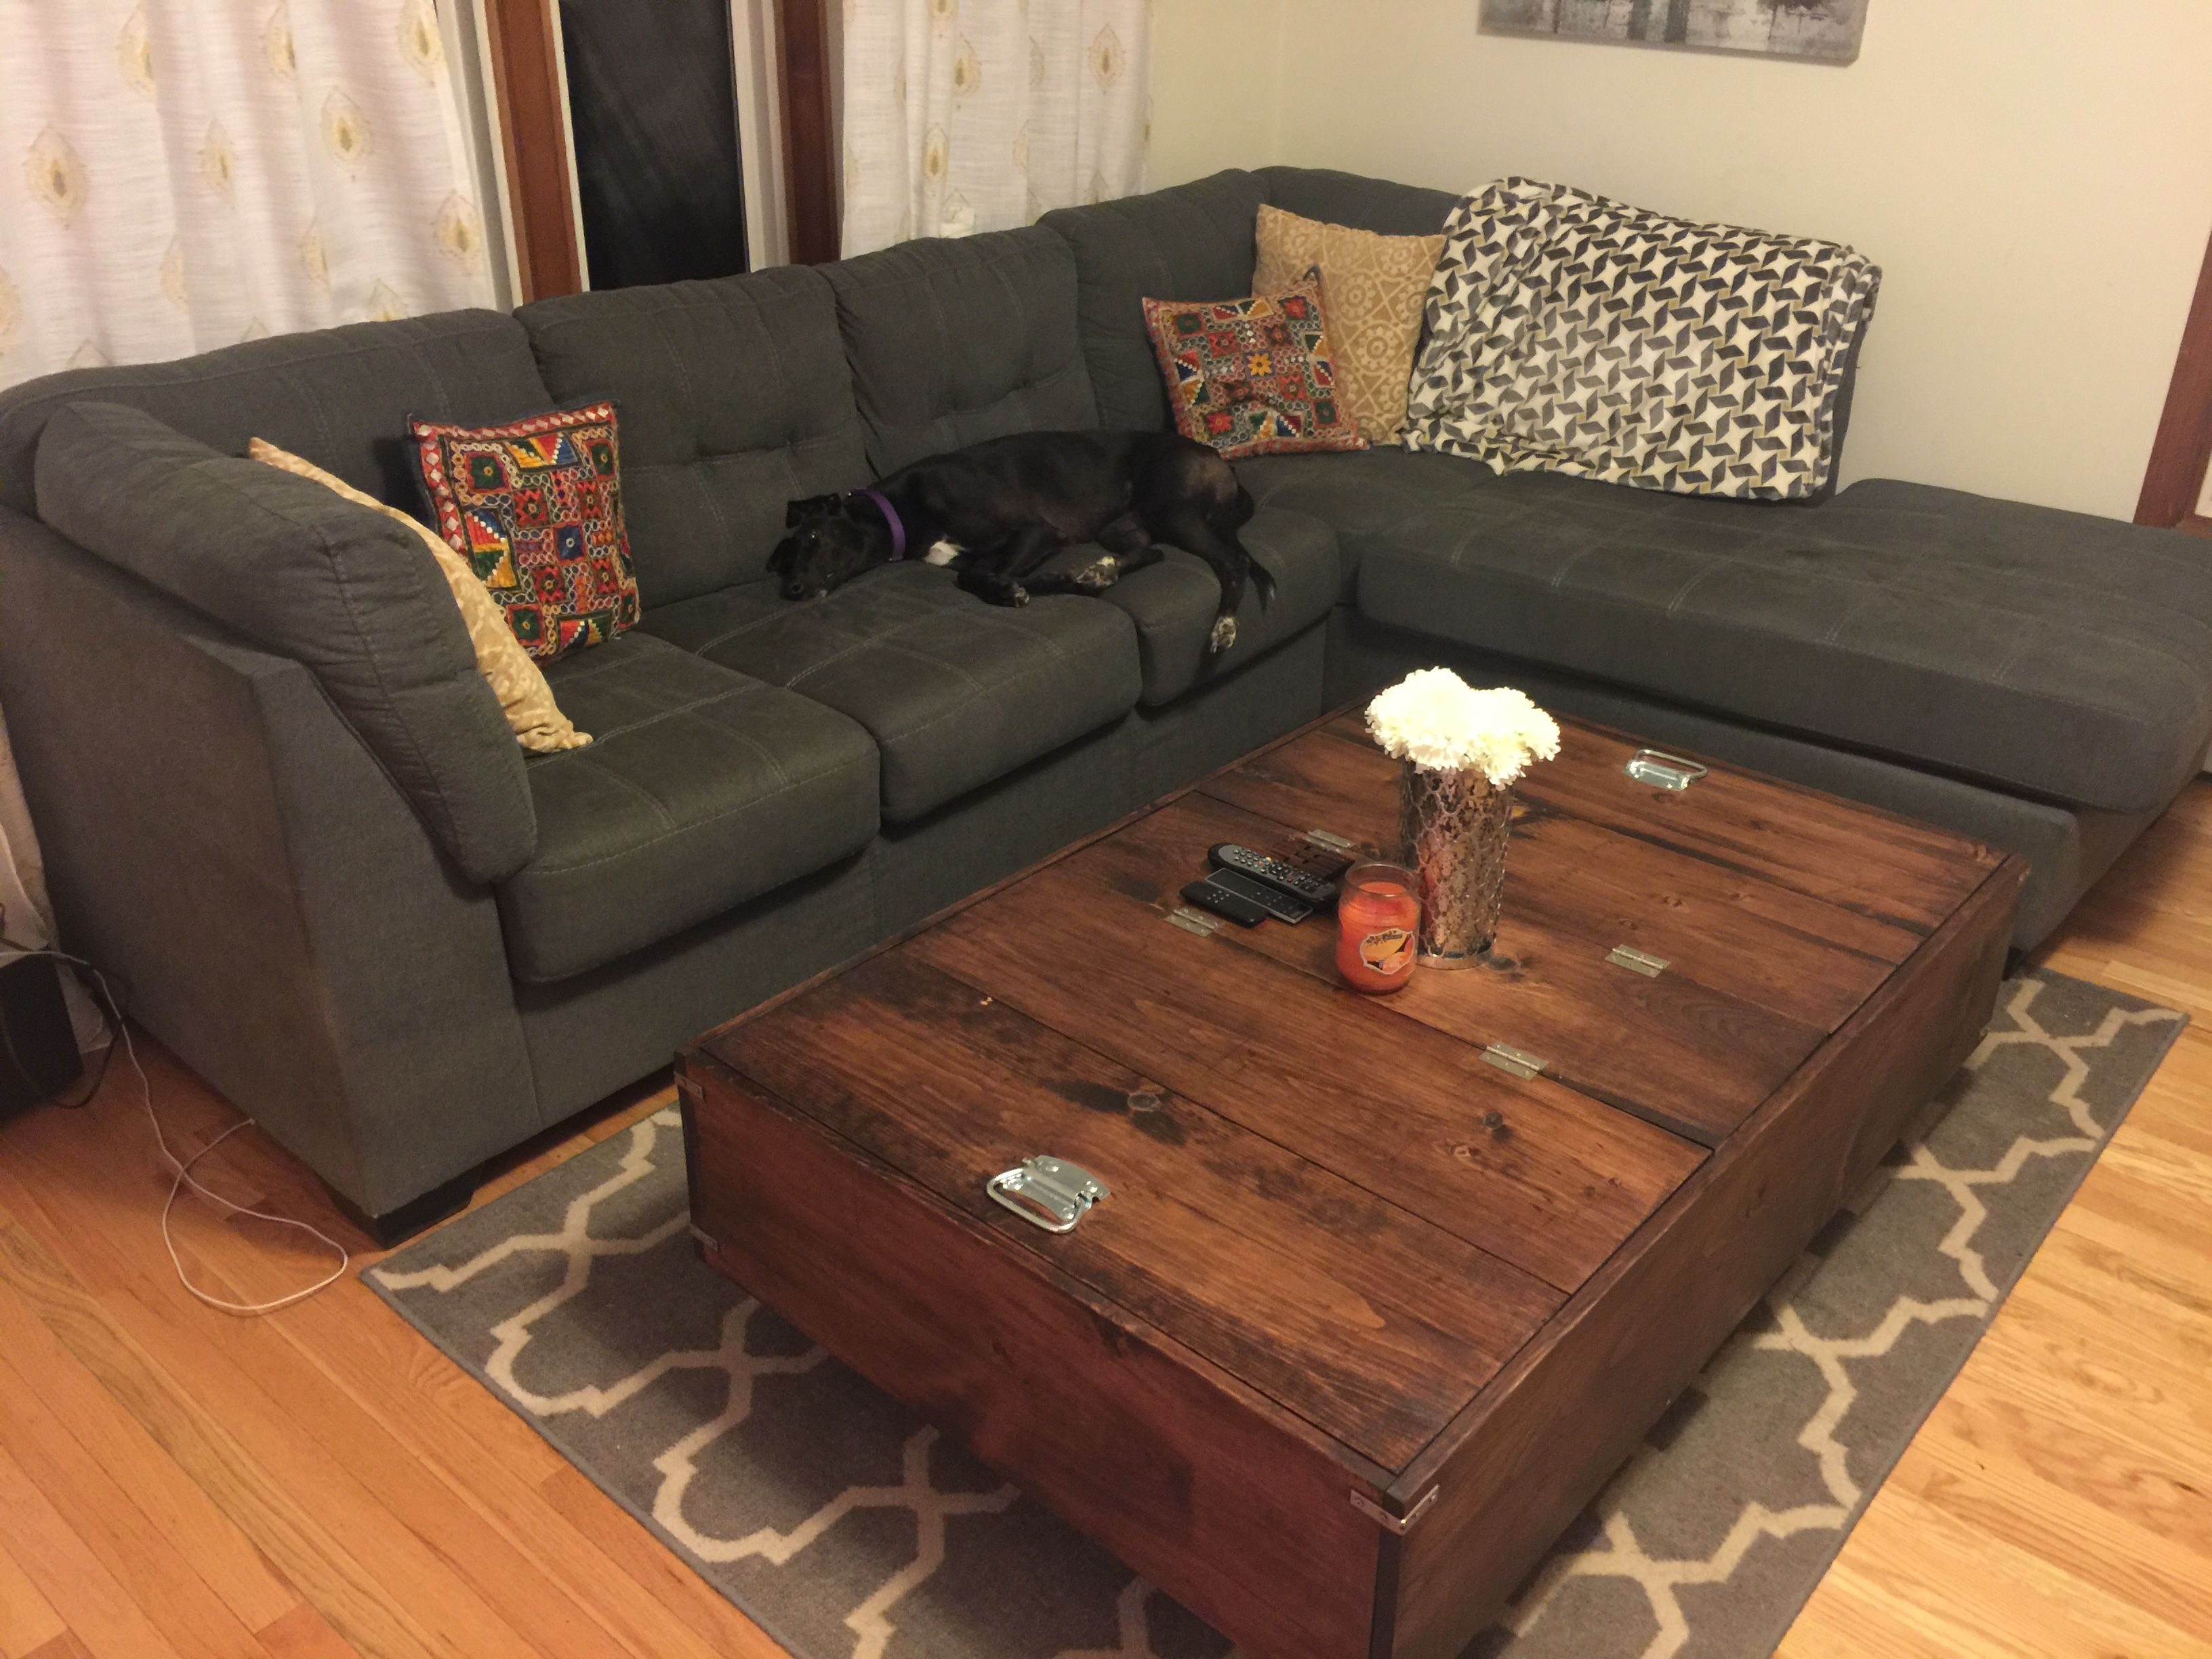 Diy Large Coffee Table With Storage Diy Storage Coffee Table Coffee Table With Storage Storage Ottoman Coffee Table [ 2448 x 3264 Pixel ]